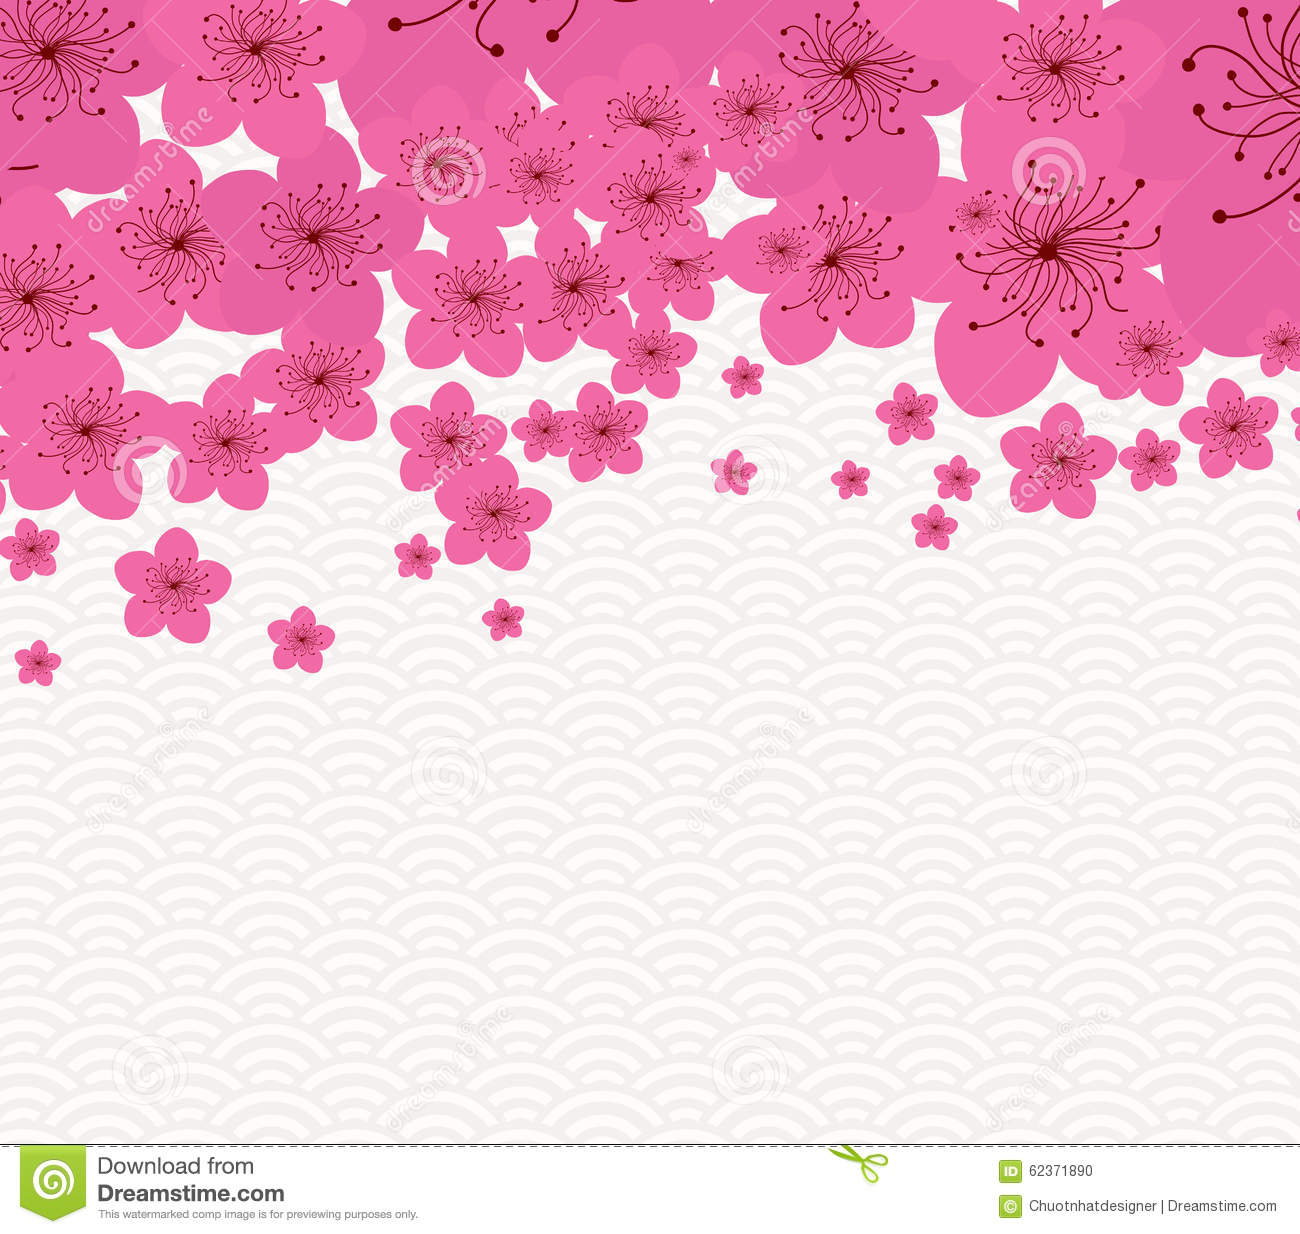 pink new year backgrounds